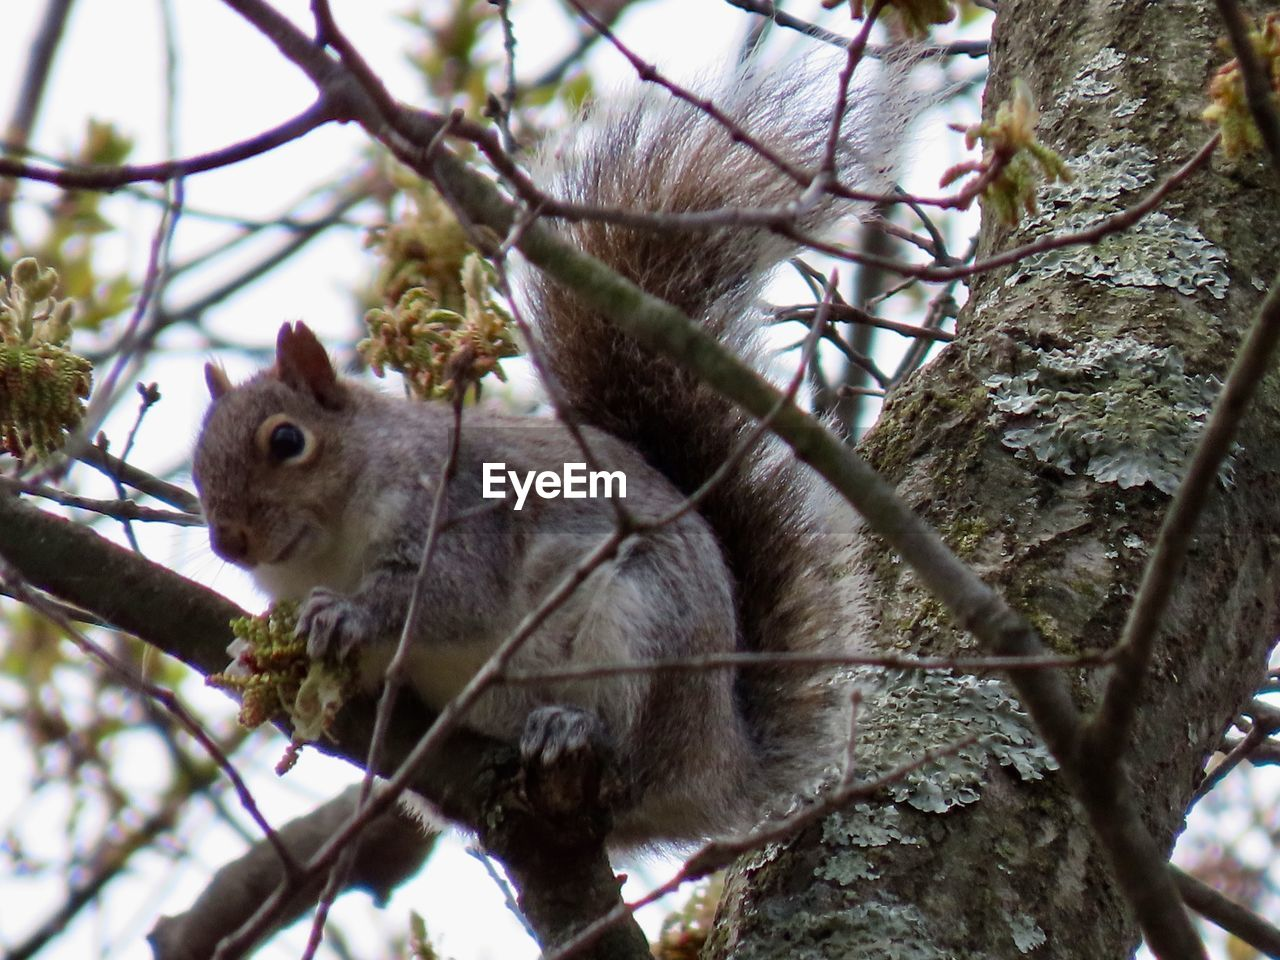 tree, branch, animal themes, animal, animal wildlife, one animal, mammal, plant, animals in the wild, low angle view, rodent, squirrel, vertebrate, no people, day, nature, focus on foreground, outdoors, close-up, tree trunk, whisker